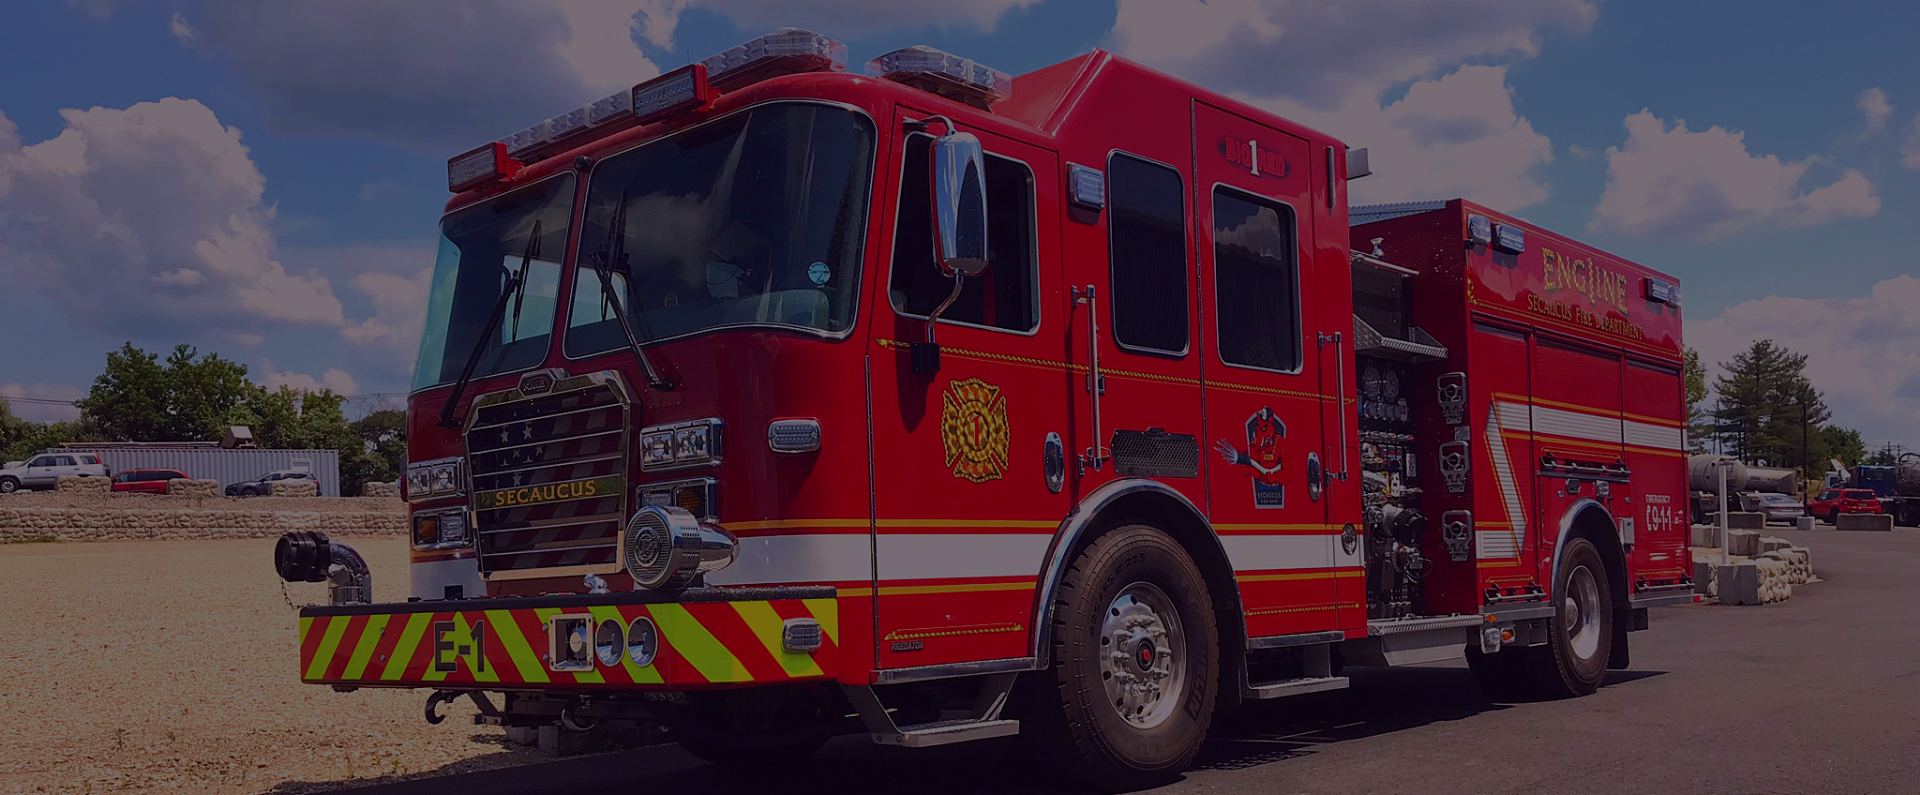 First Priority Emergency Vehicles Fire Division